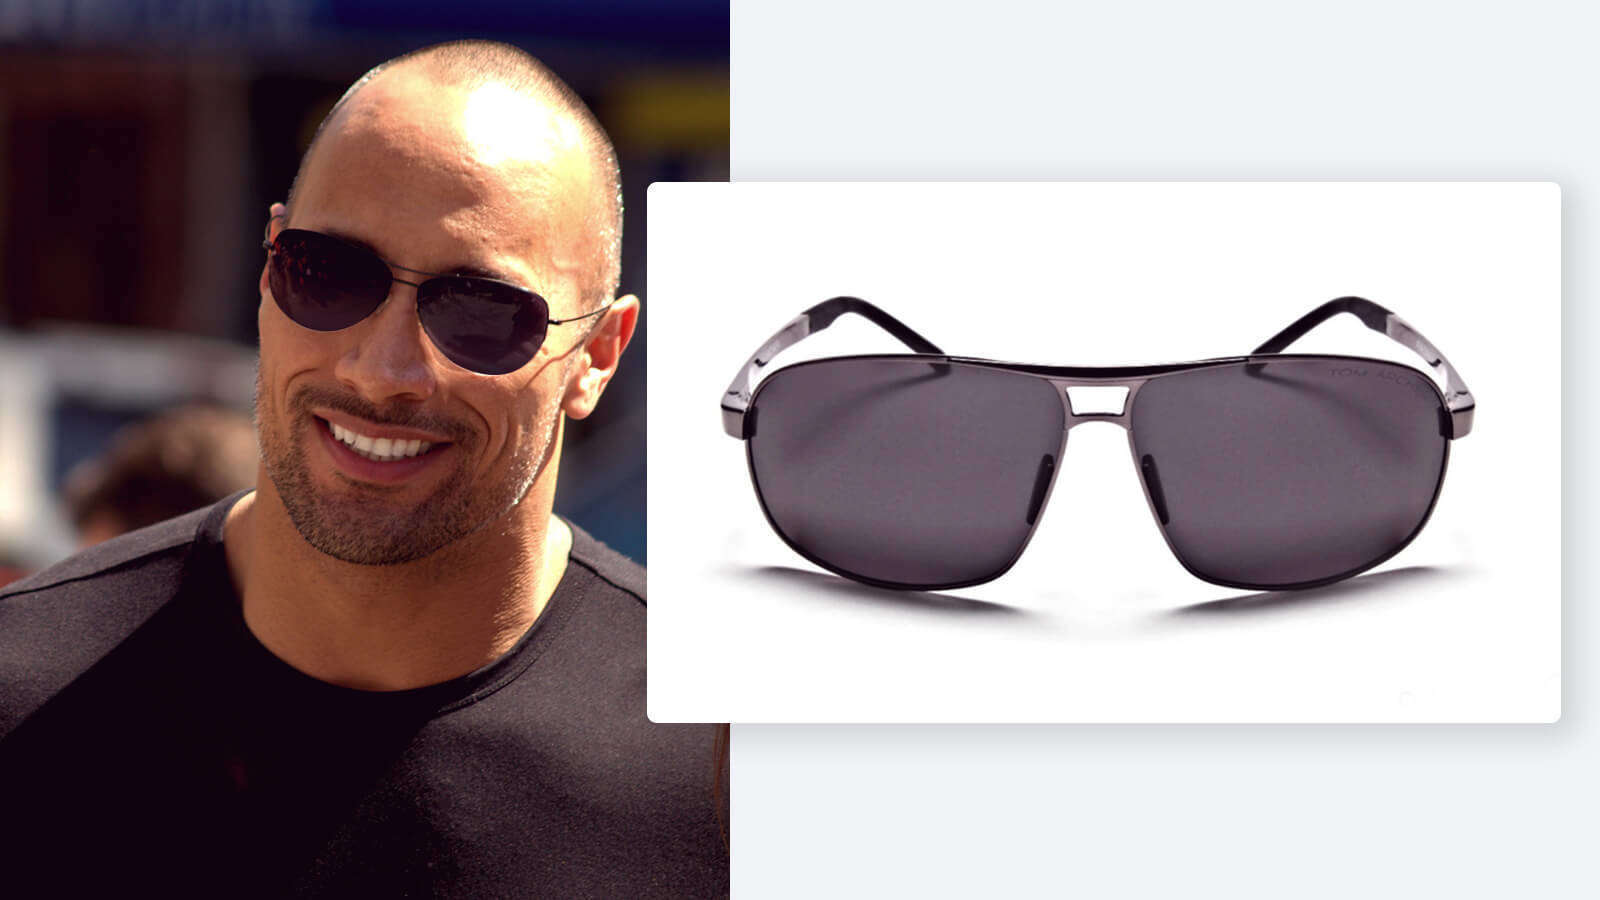 Dwayne Johnson sunglasses